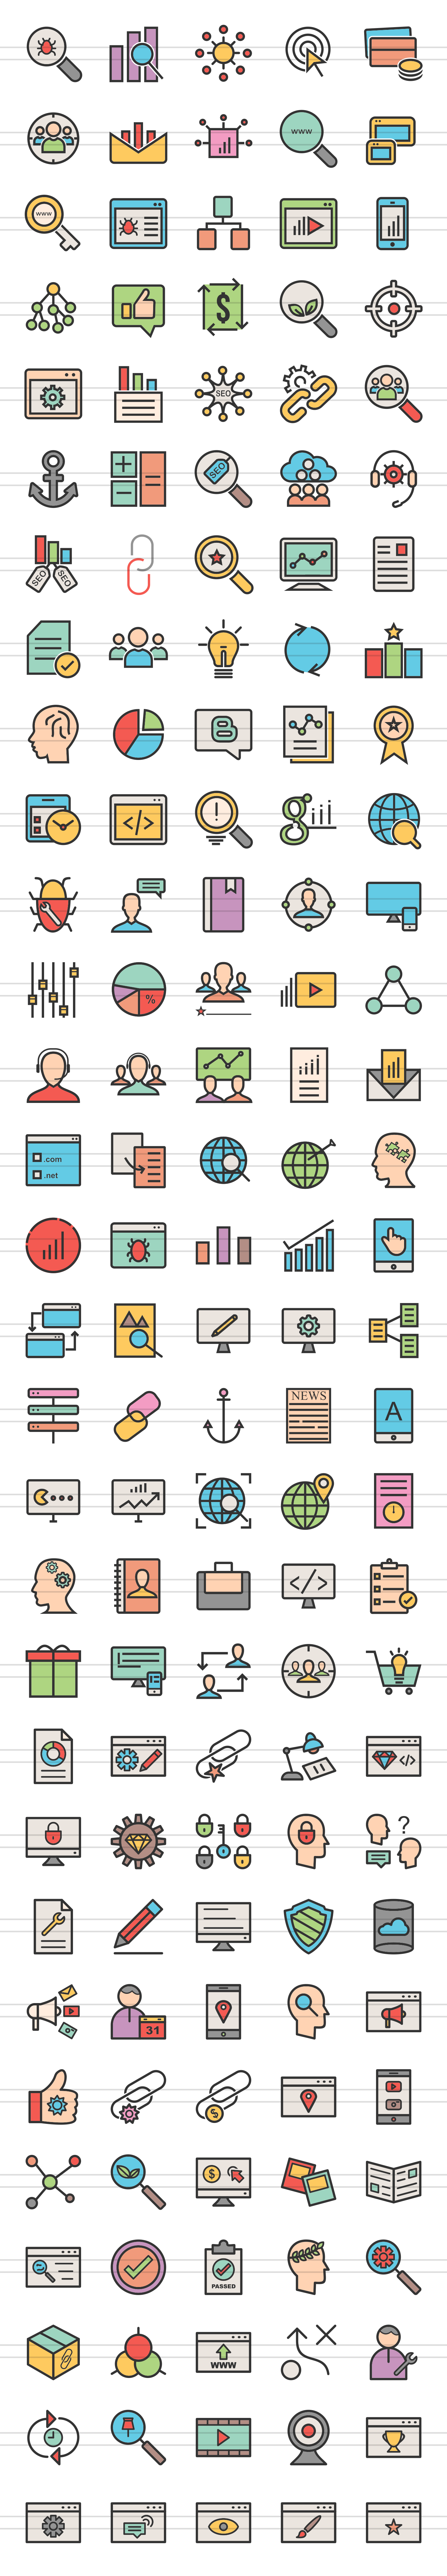 150 IT Services Filled Line Icons example image 2